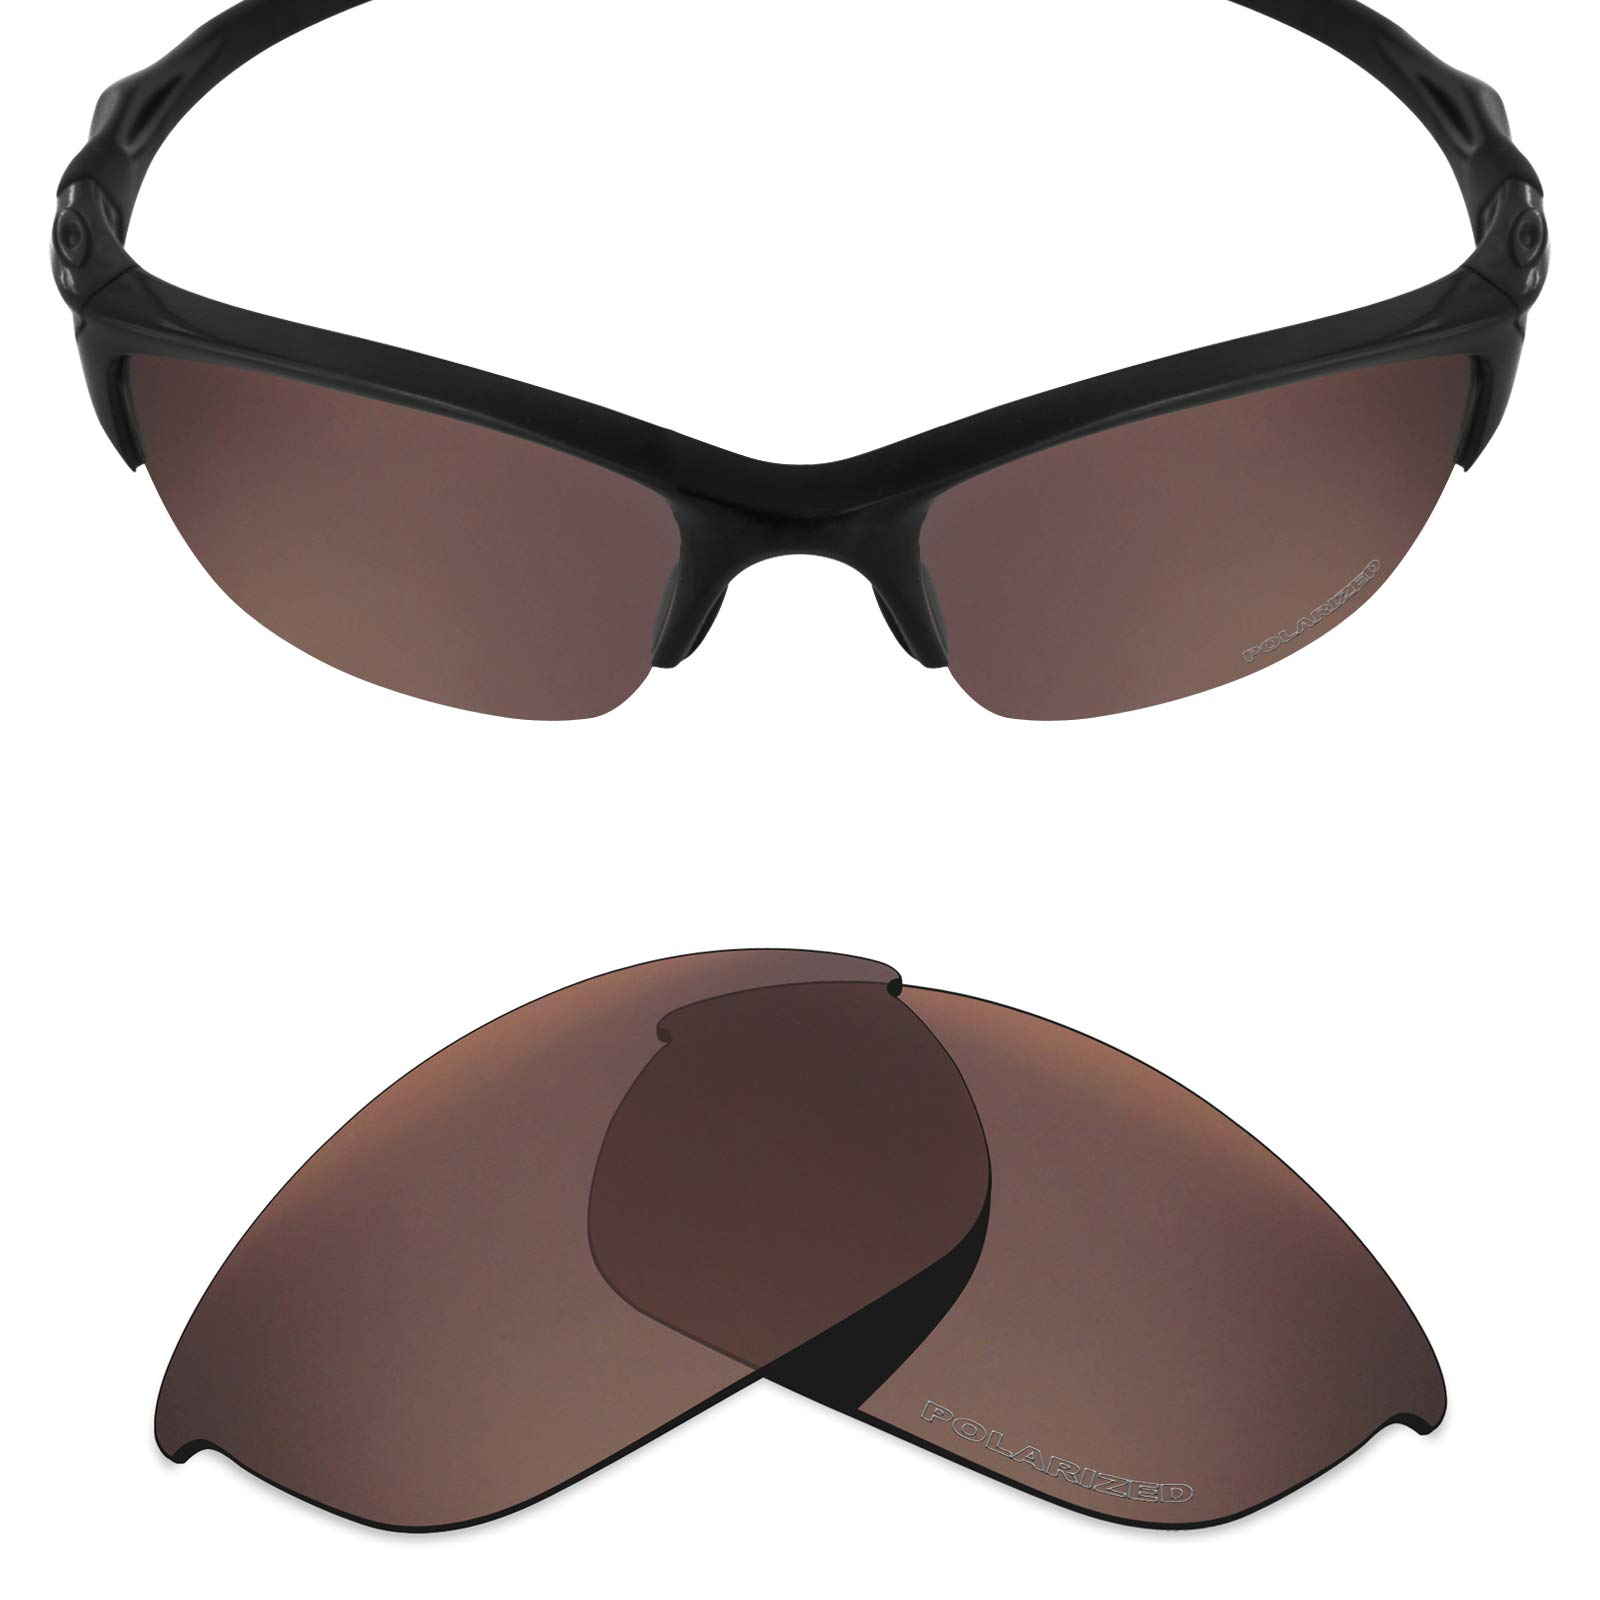 a862b49a10344 Mryok+ Polarized Replacement Lenses for Oakley Half Jacket 2.0 - Bronze  Brown